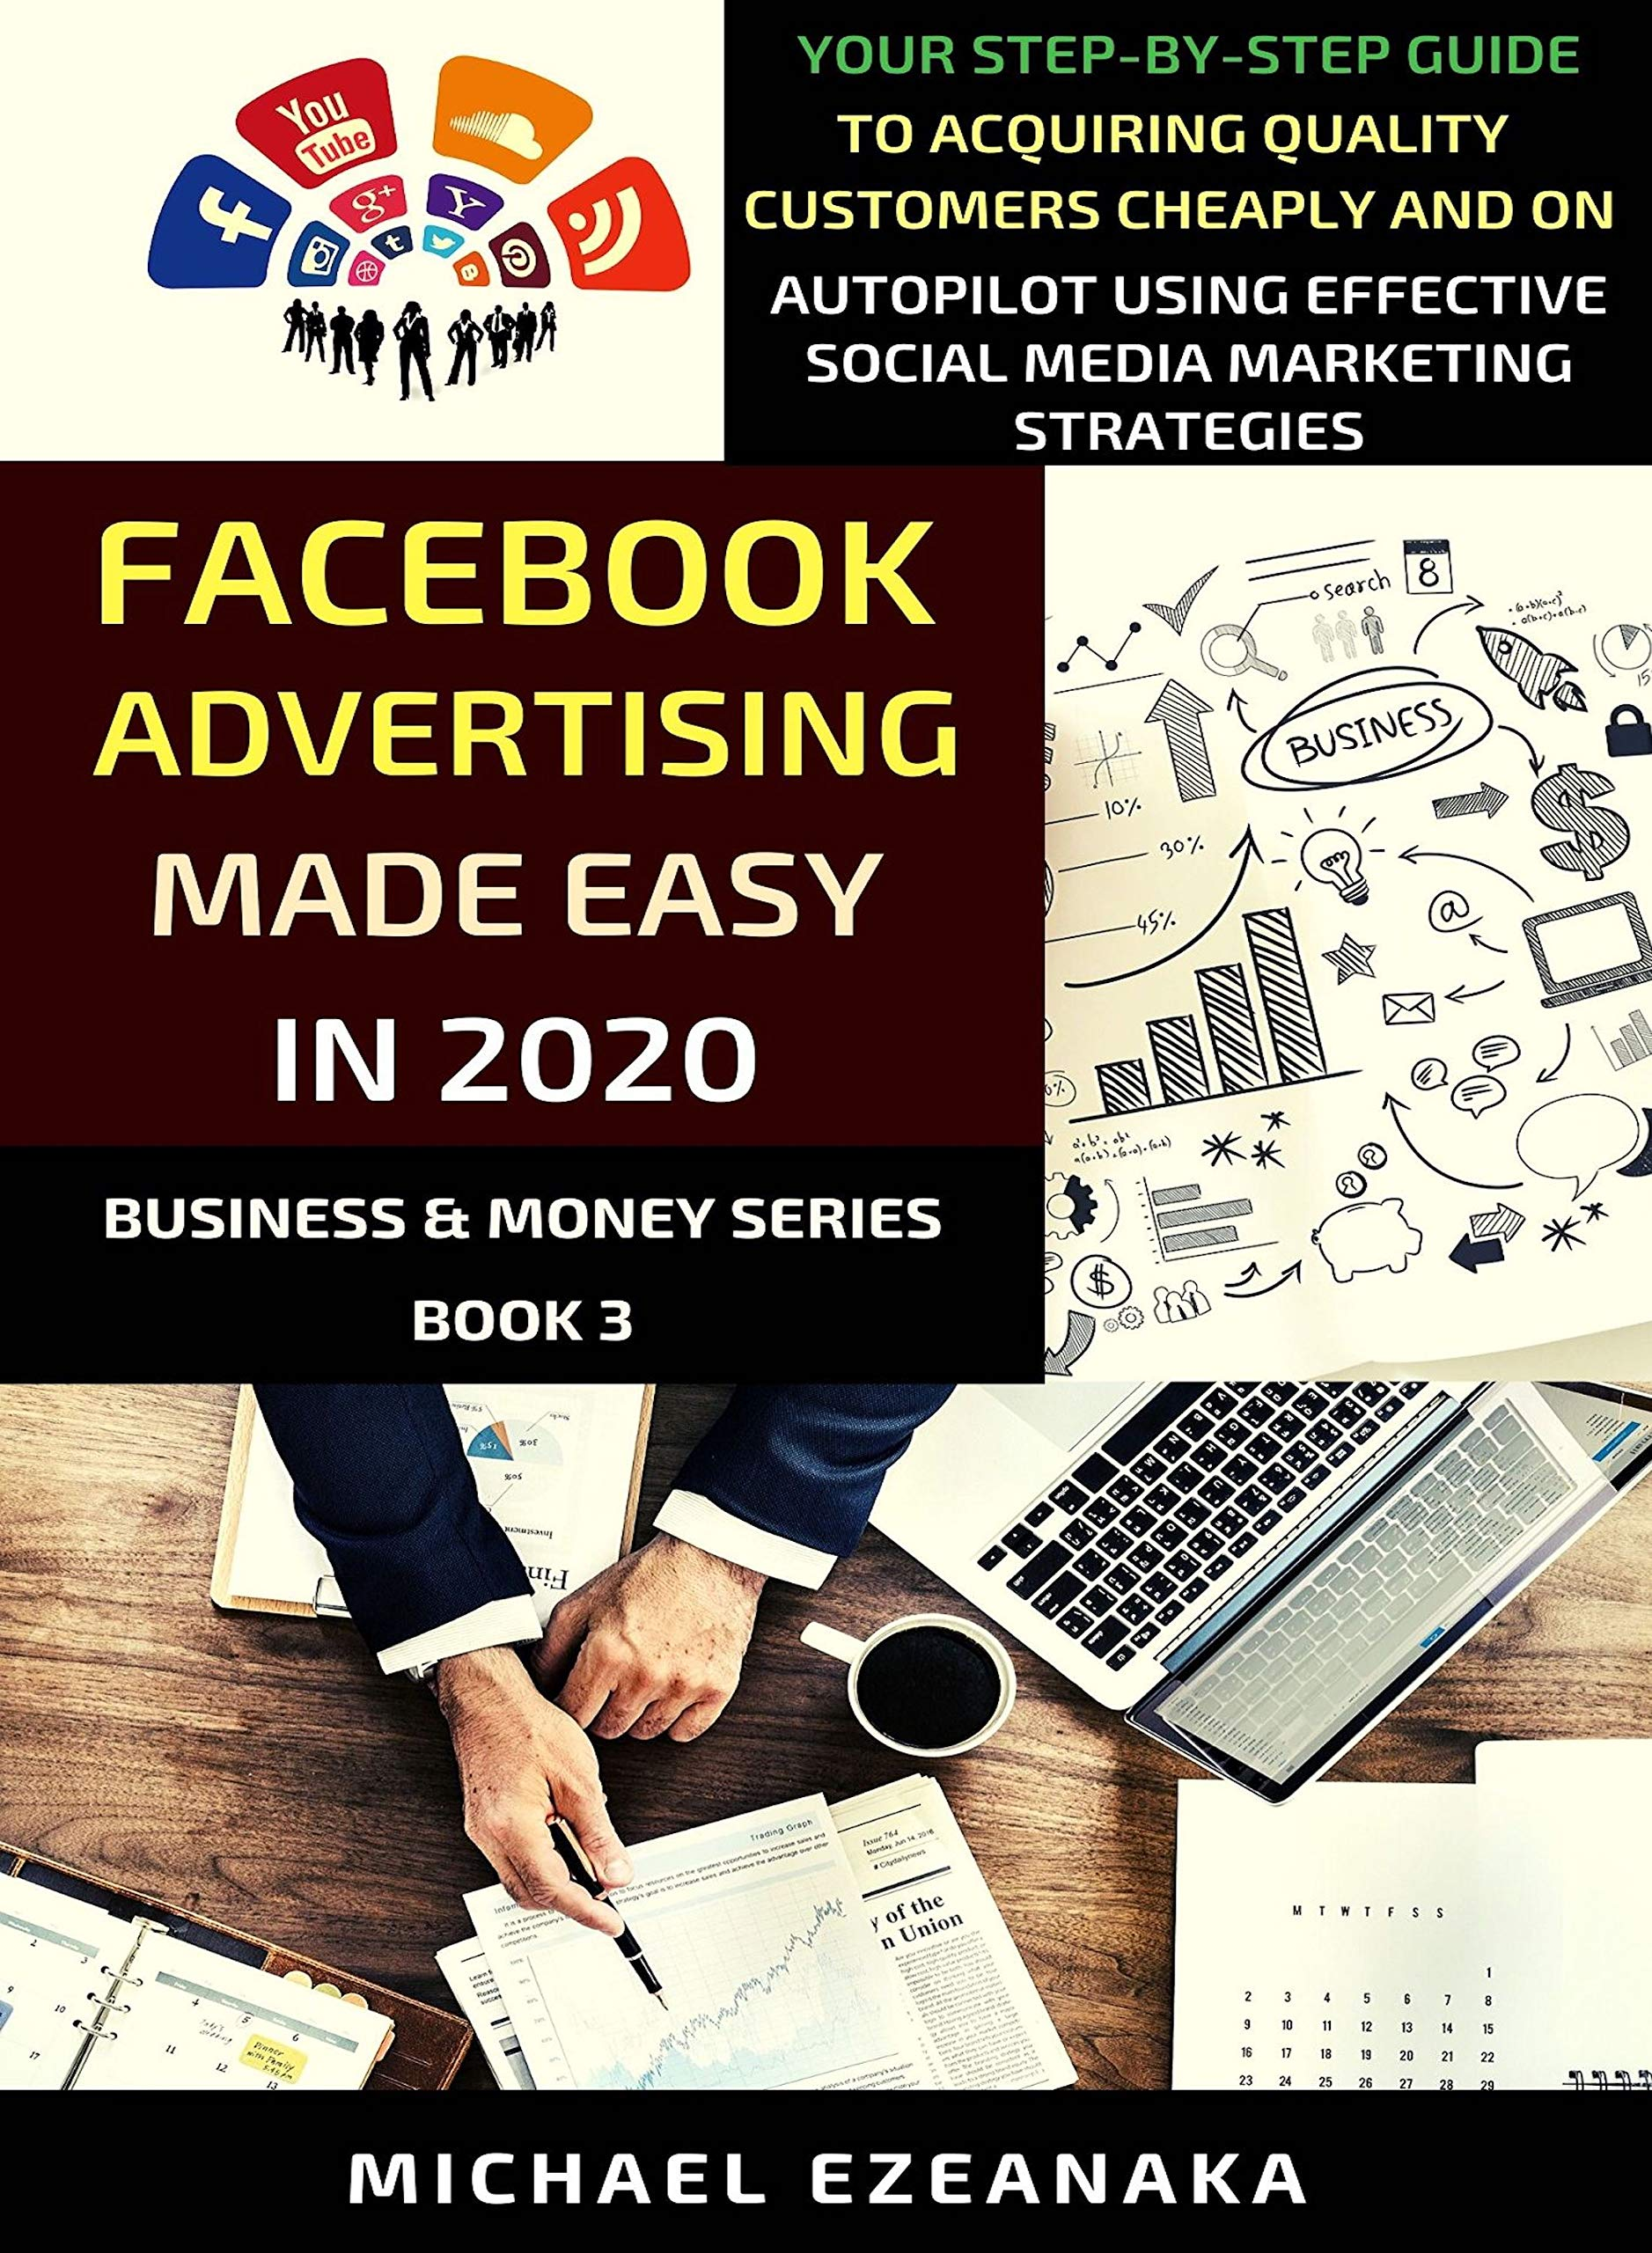 Facebook Advertising Made Easy In 2020: Your Step-By-Step Guide To Acquiring Quality Customers Cheaply And On Autopilot Using Effective Social Media Marketing Strategies (Business & Money Series 3)